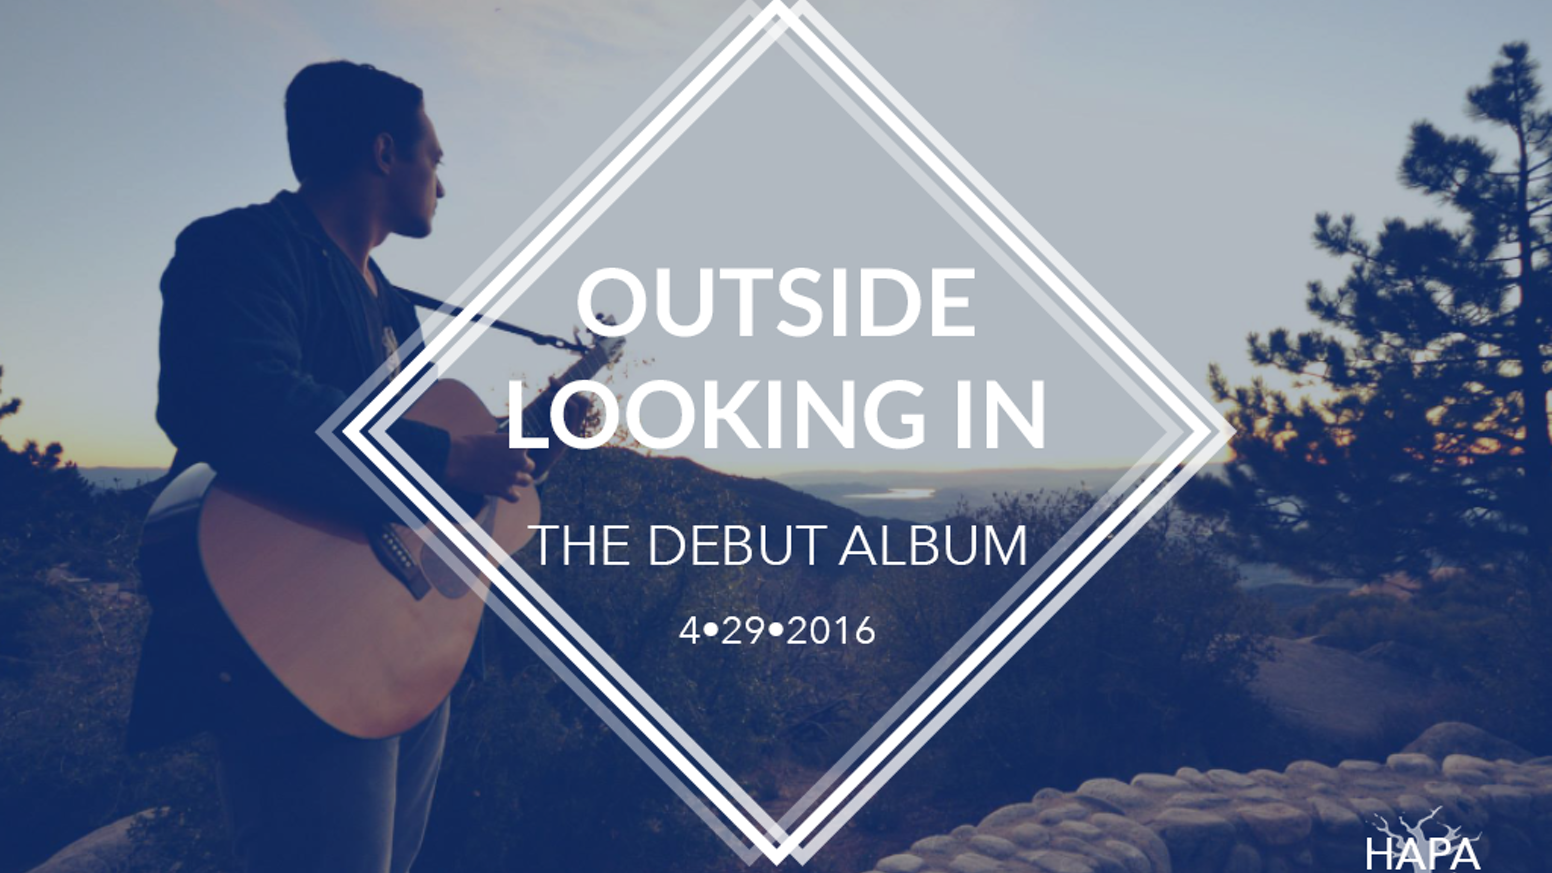 Every once in a while music comes along that showcases the soul of an artist. This is my debut album: Outside Looking In.